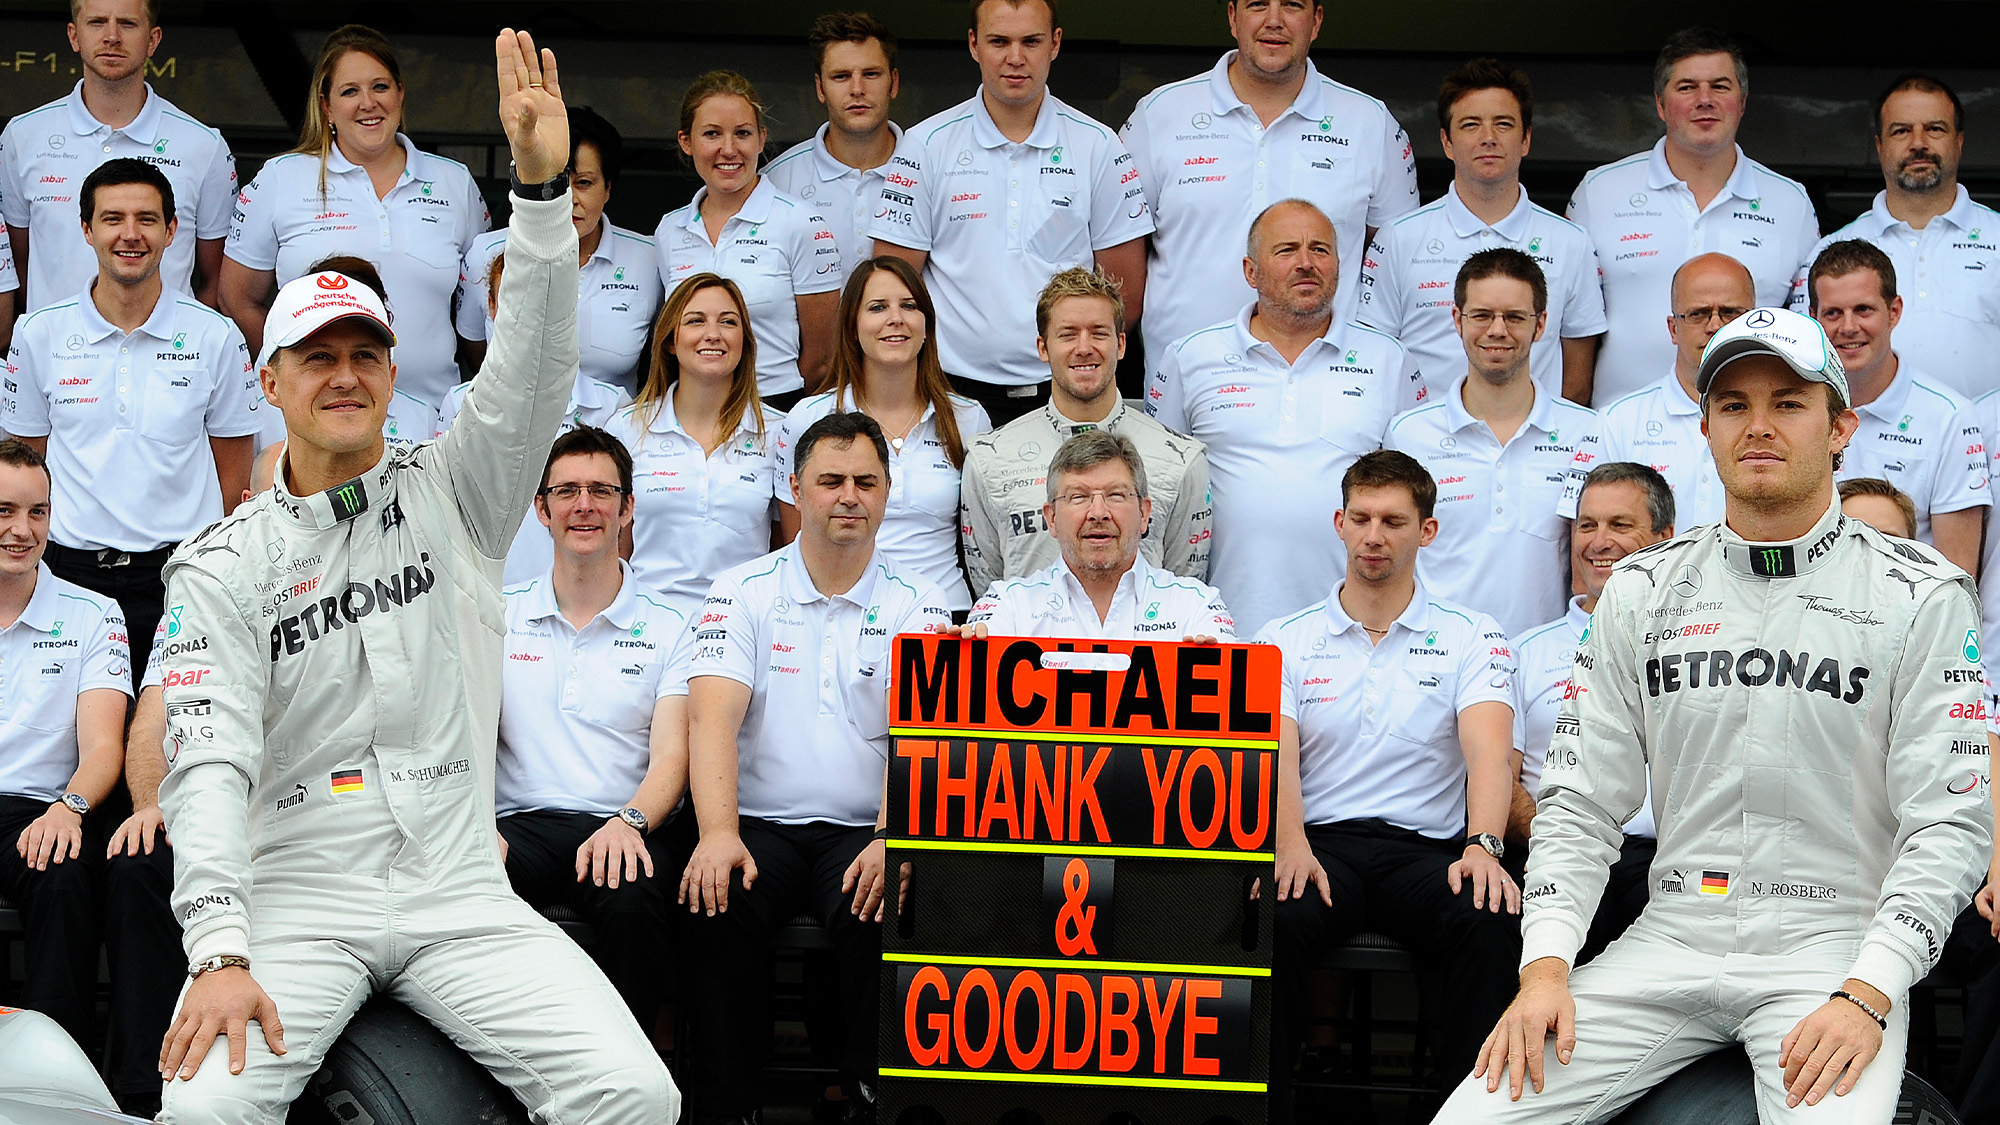 Mercedes team photo with Nico Rosberg and Michael Schumacher who had completed his last race for the team at the 2012 F1 Brazilian Grand Prix